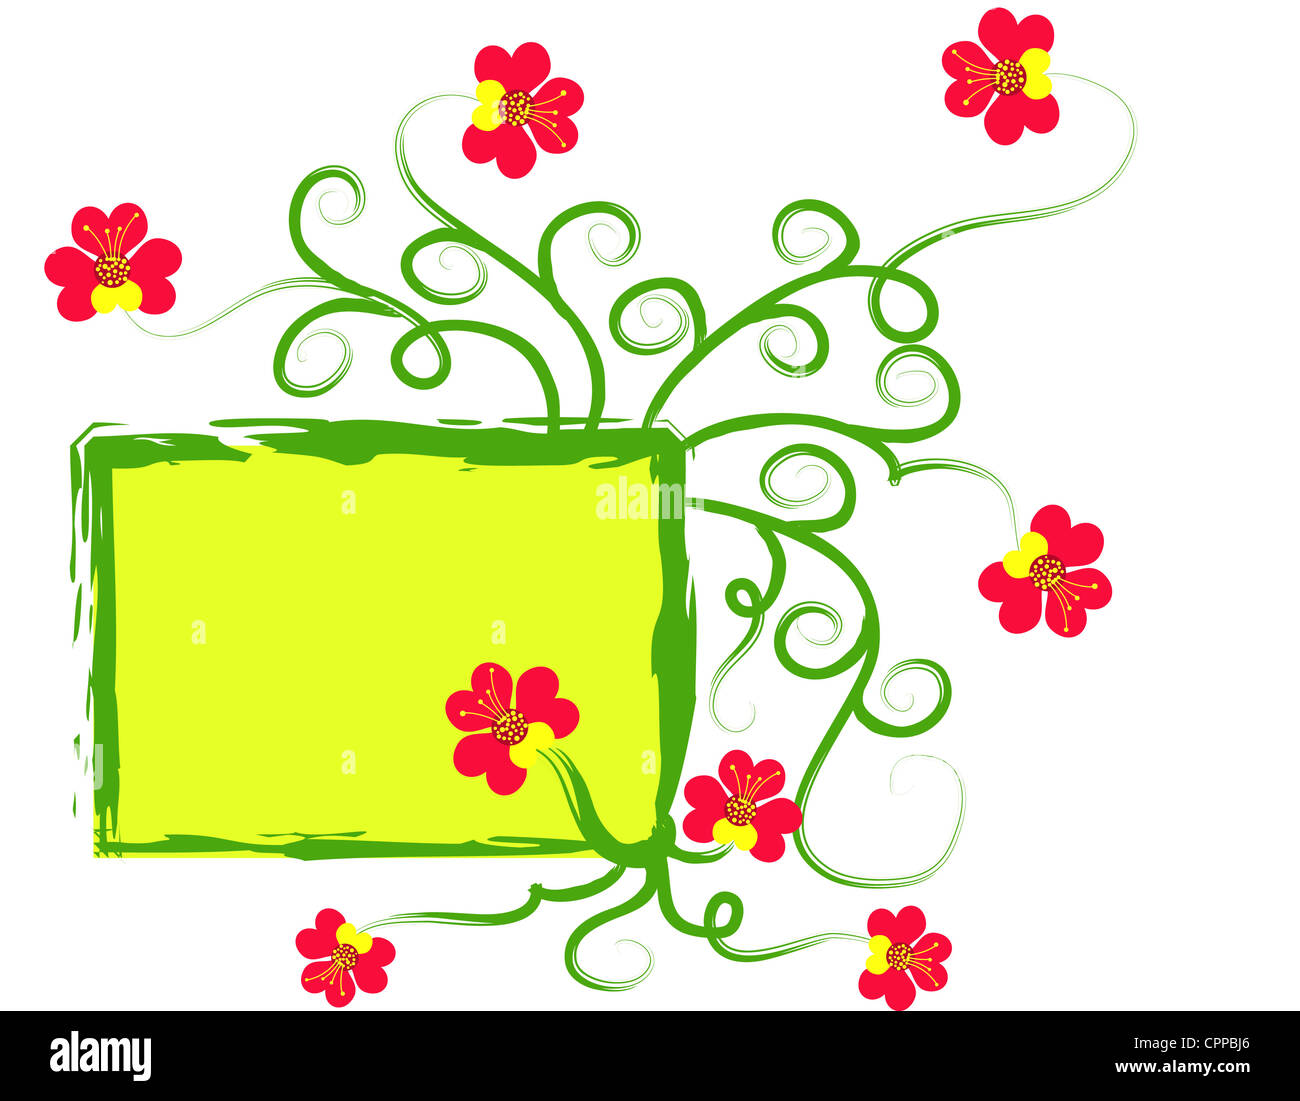 Red floral design on green frame Stock Photo